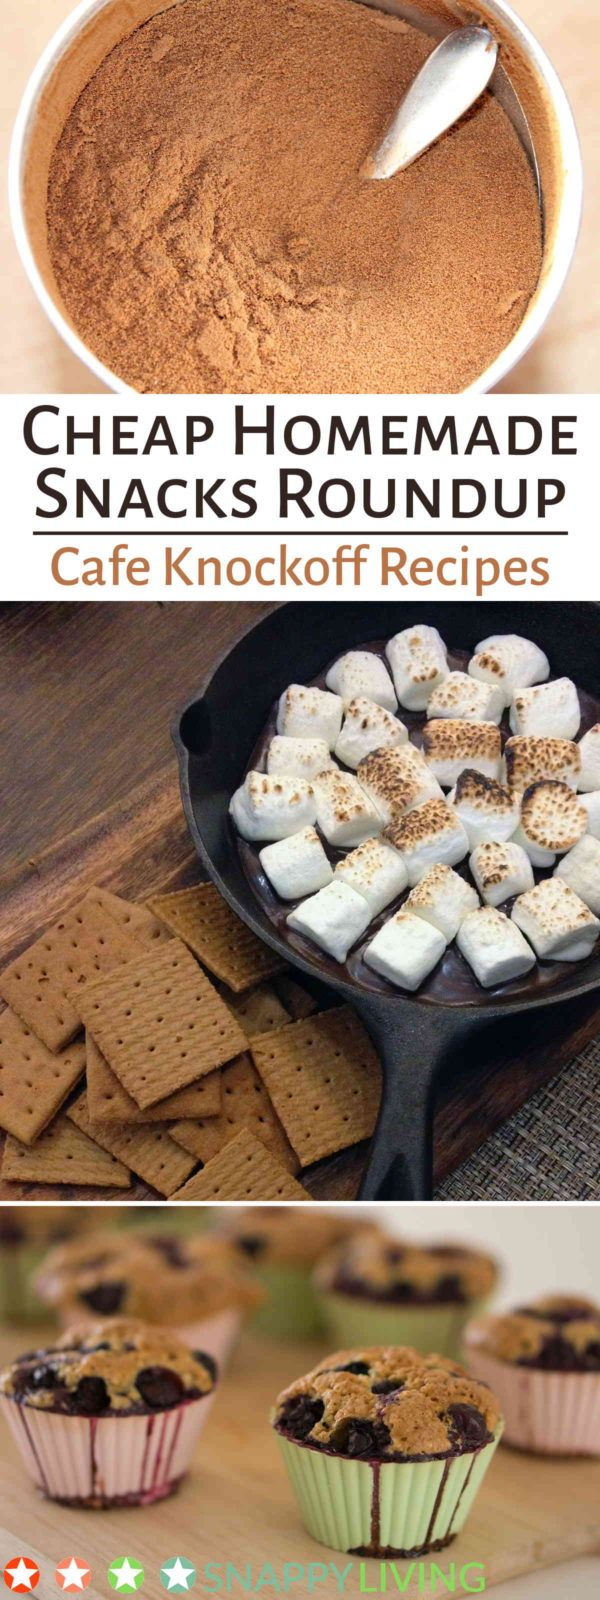 Make your own cappuccino mix, Cinnabons, Starbucks muffins and more with these recipes for homemade snacks. Pay a fraction of the price for buying them at shops and stores, and still get all the enjoyment.